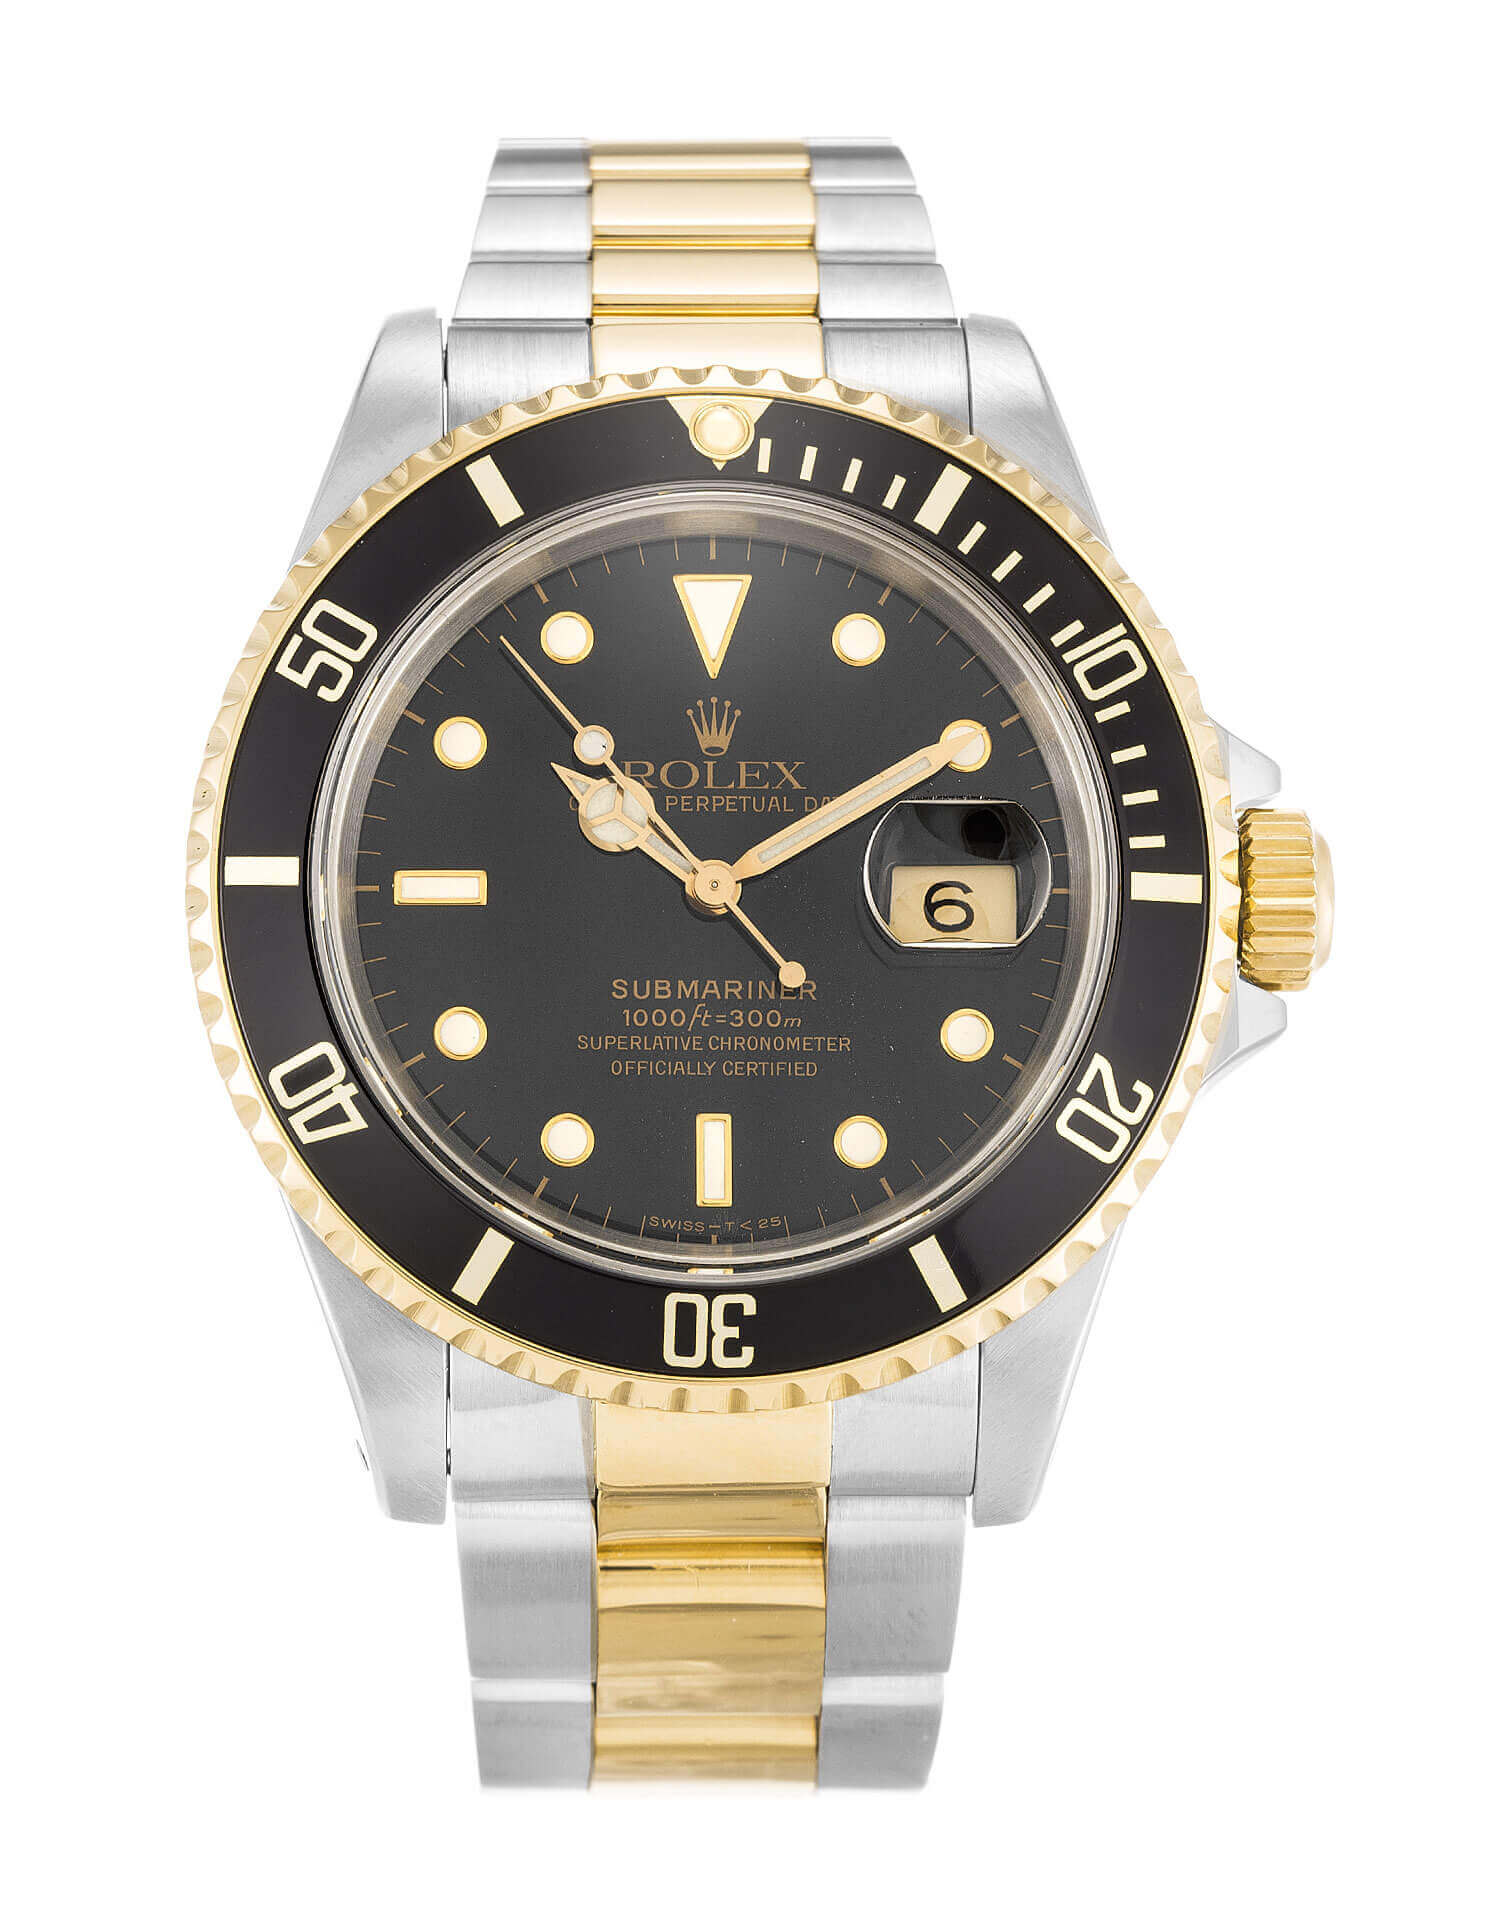 Rolex Replica Submariner 16613-40 MM